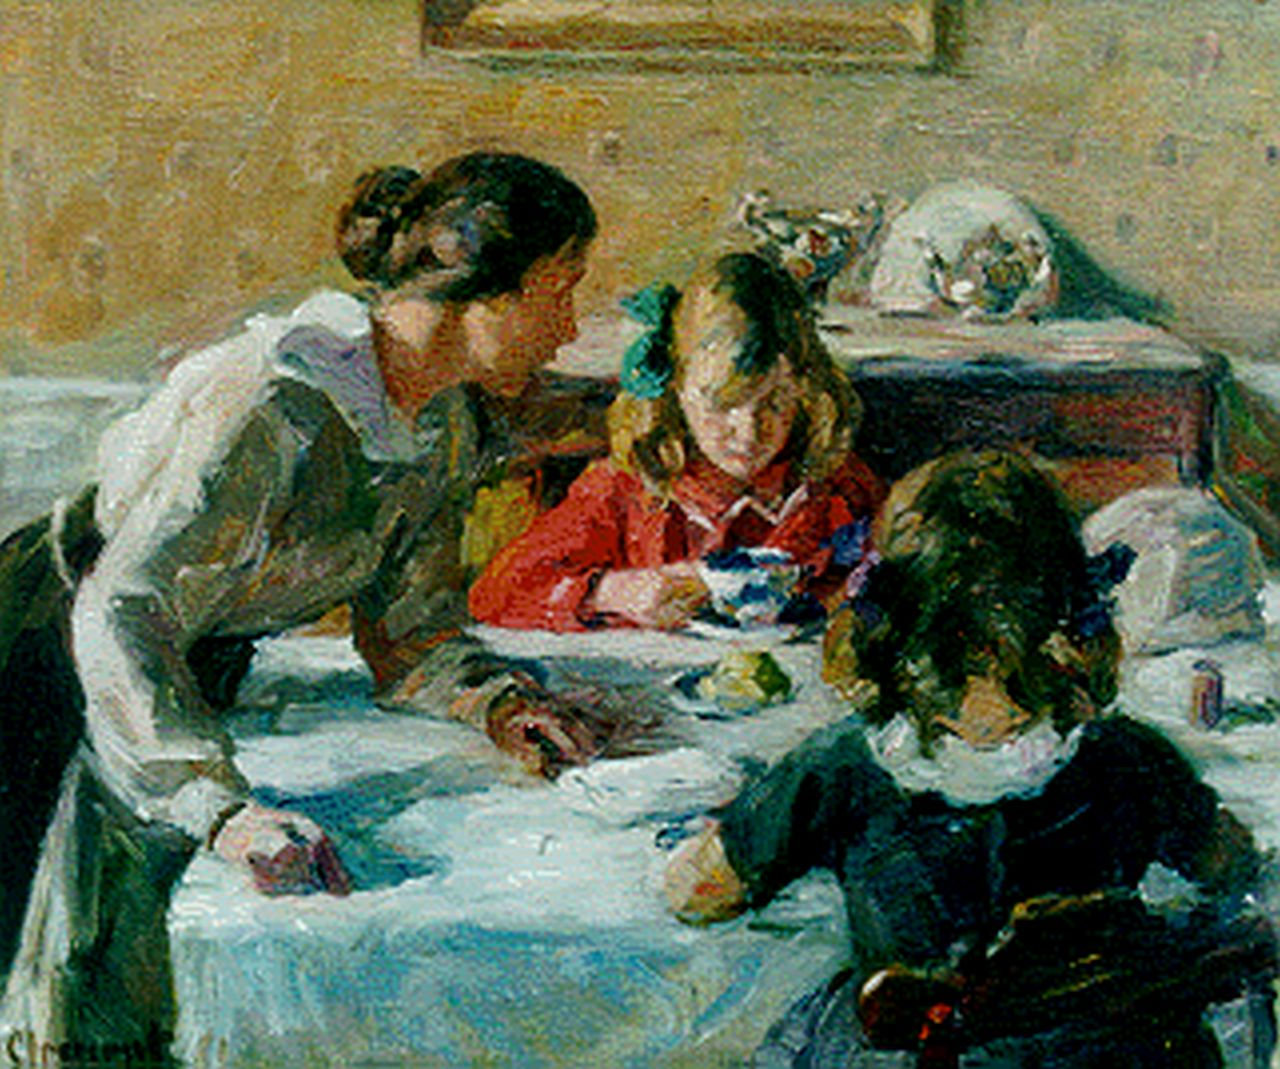 Gad Frederik Clement | Having breakfast, oil on canvas, 36.7 x 43.4 cm, signed l.l.